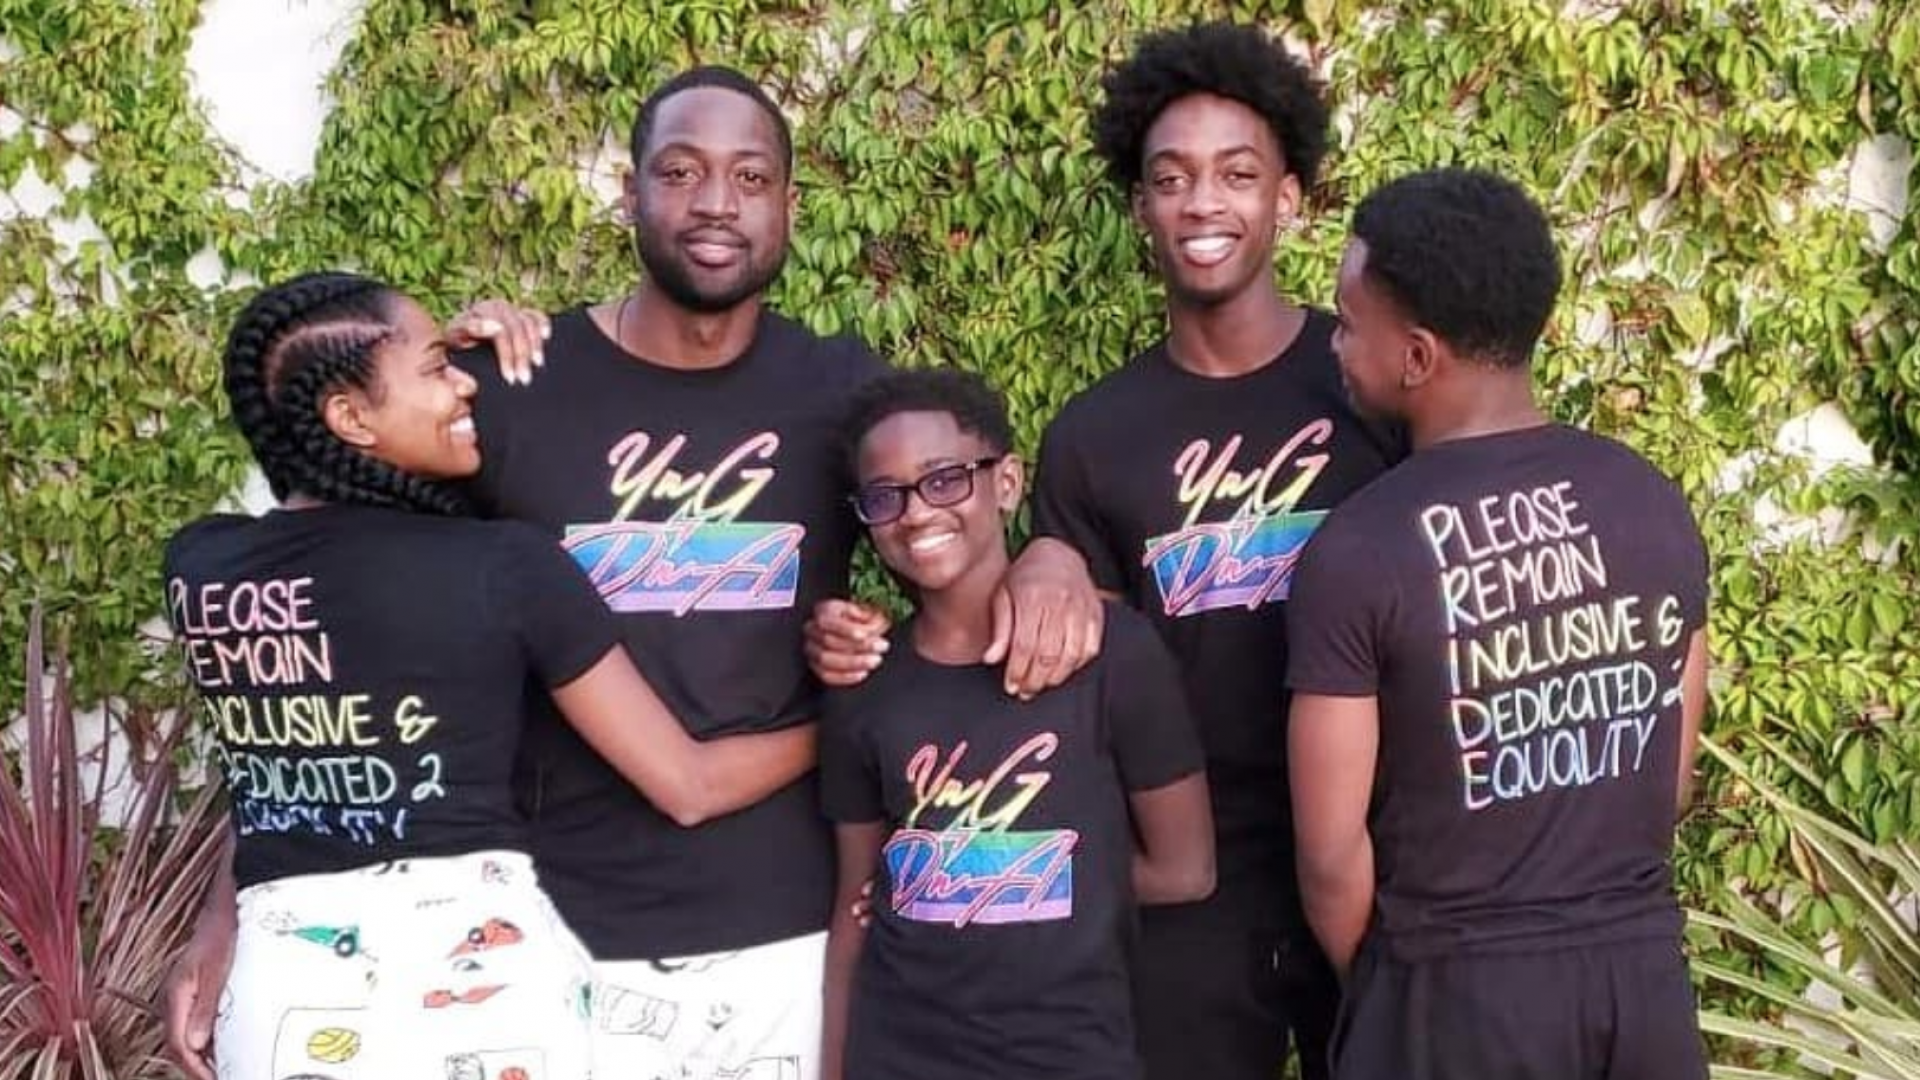 Dwyane Wade Speaks On Accepting His Son Zion's Sexuality